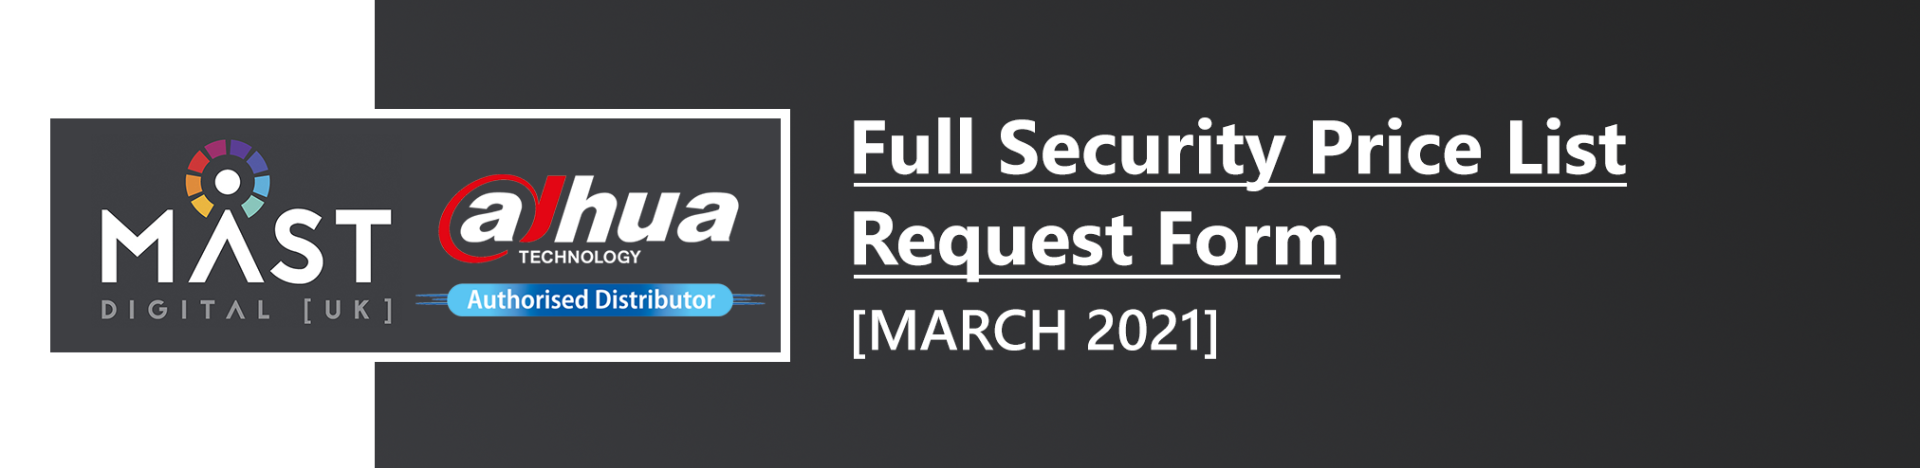 Full Security Price List Request Form - March 2021